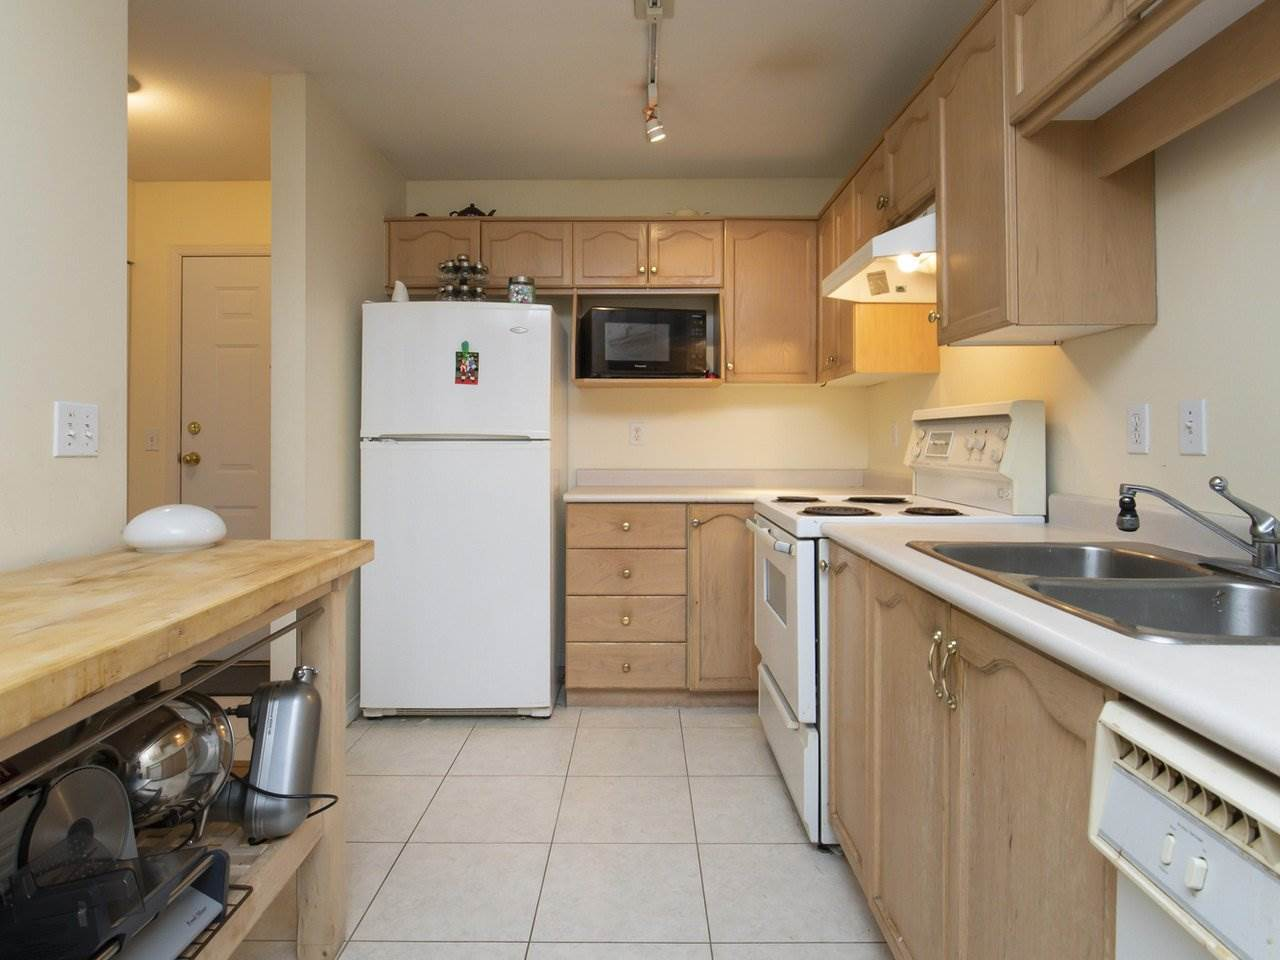 301 2615 JANE STREET - Central Pt Coquitlam Apartment/Condo for sale, 1 Bedroom (R2447351) - #8